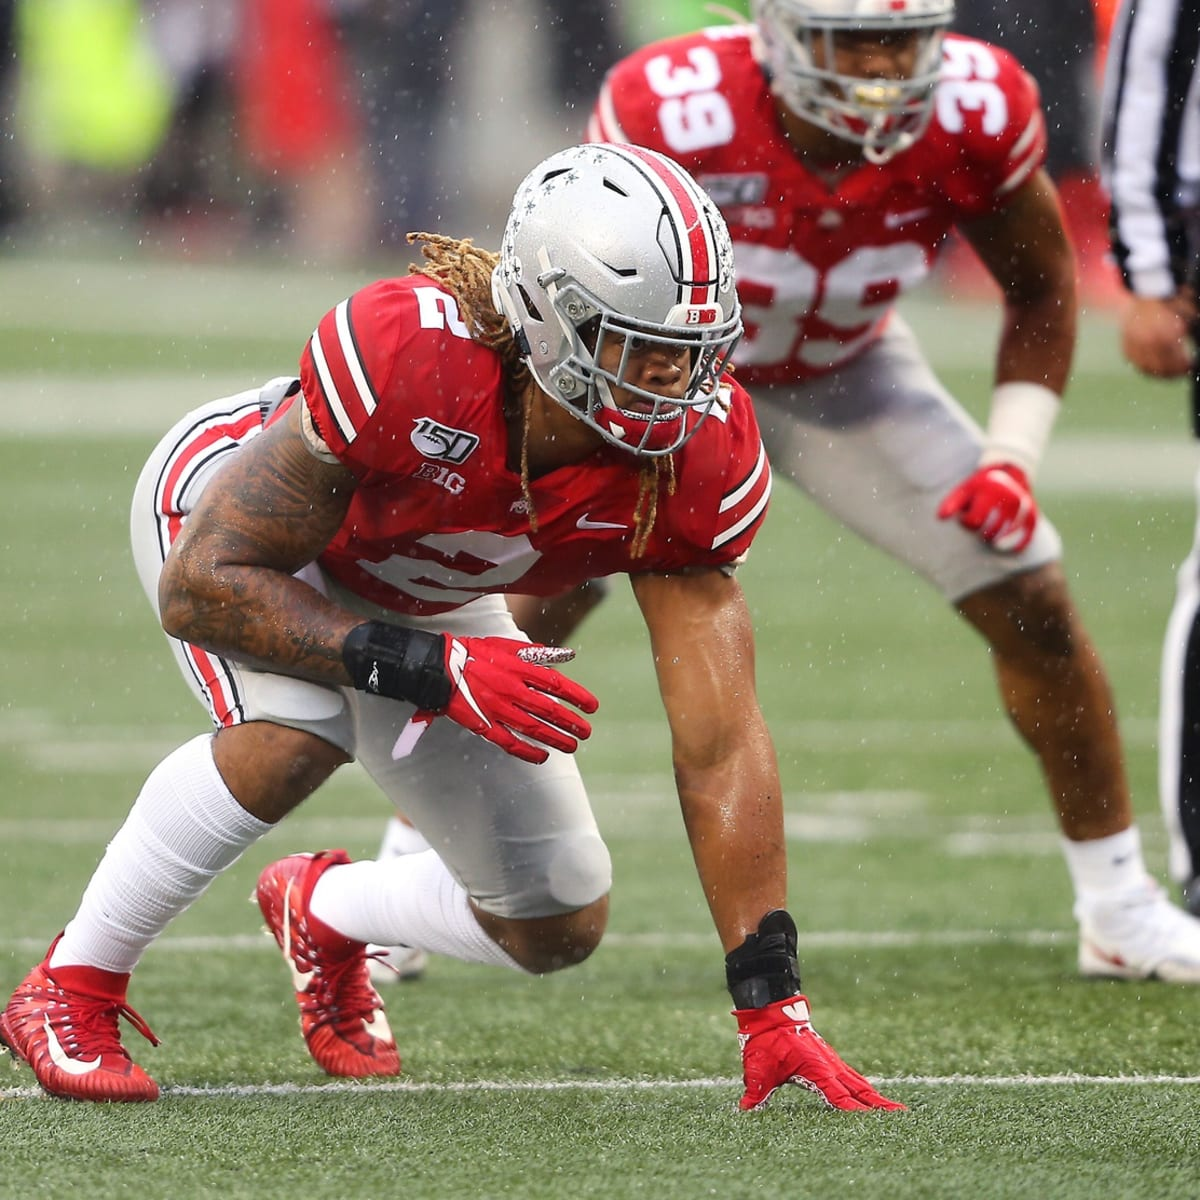 Chase Young Still Has Matters To Weigh On Nfl Decision Sports Illustrated Ohio State Buckeyes News Analysis And More